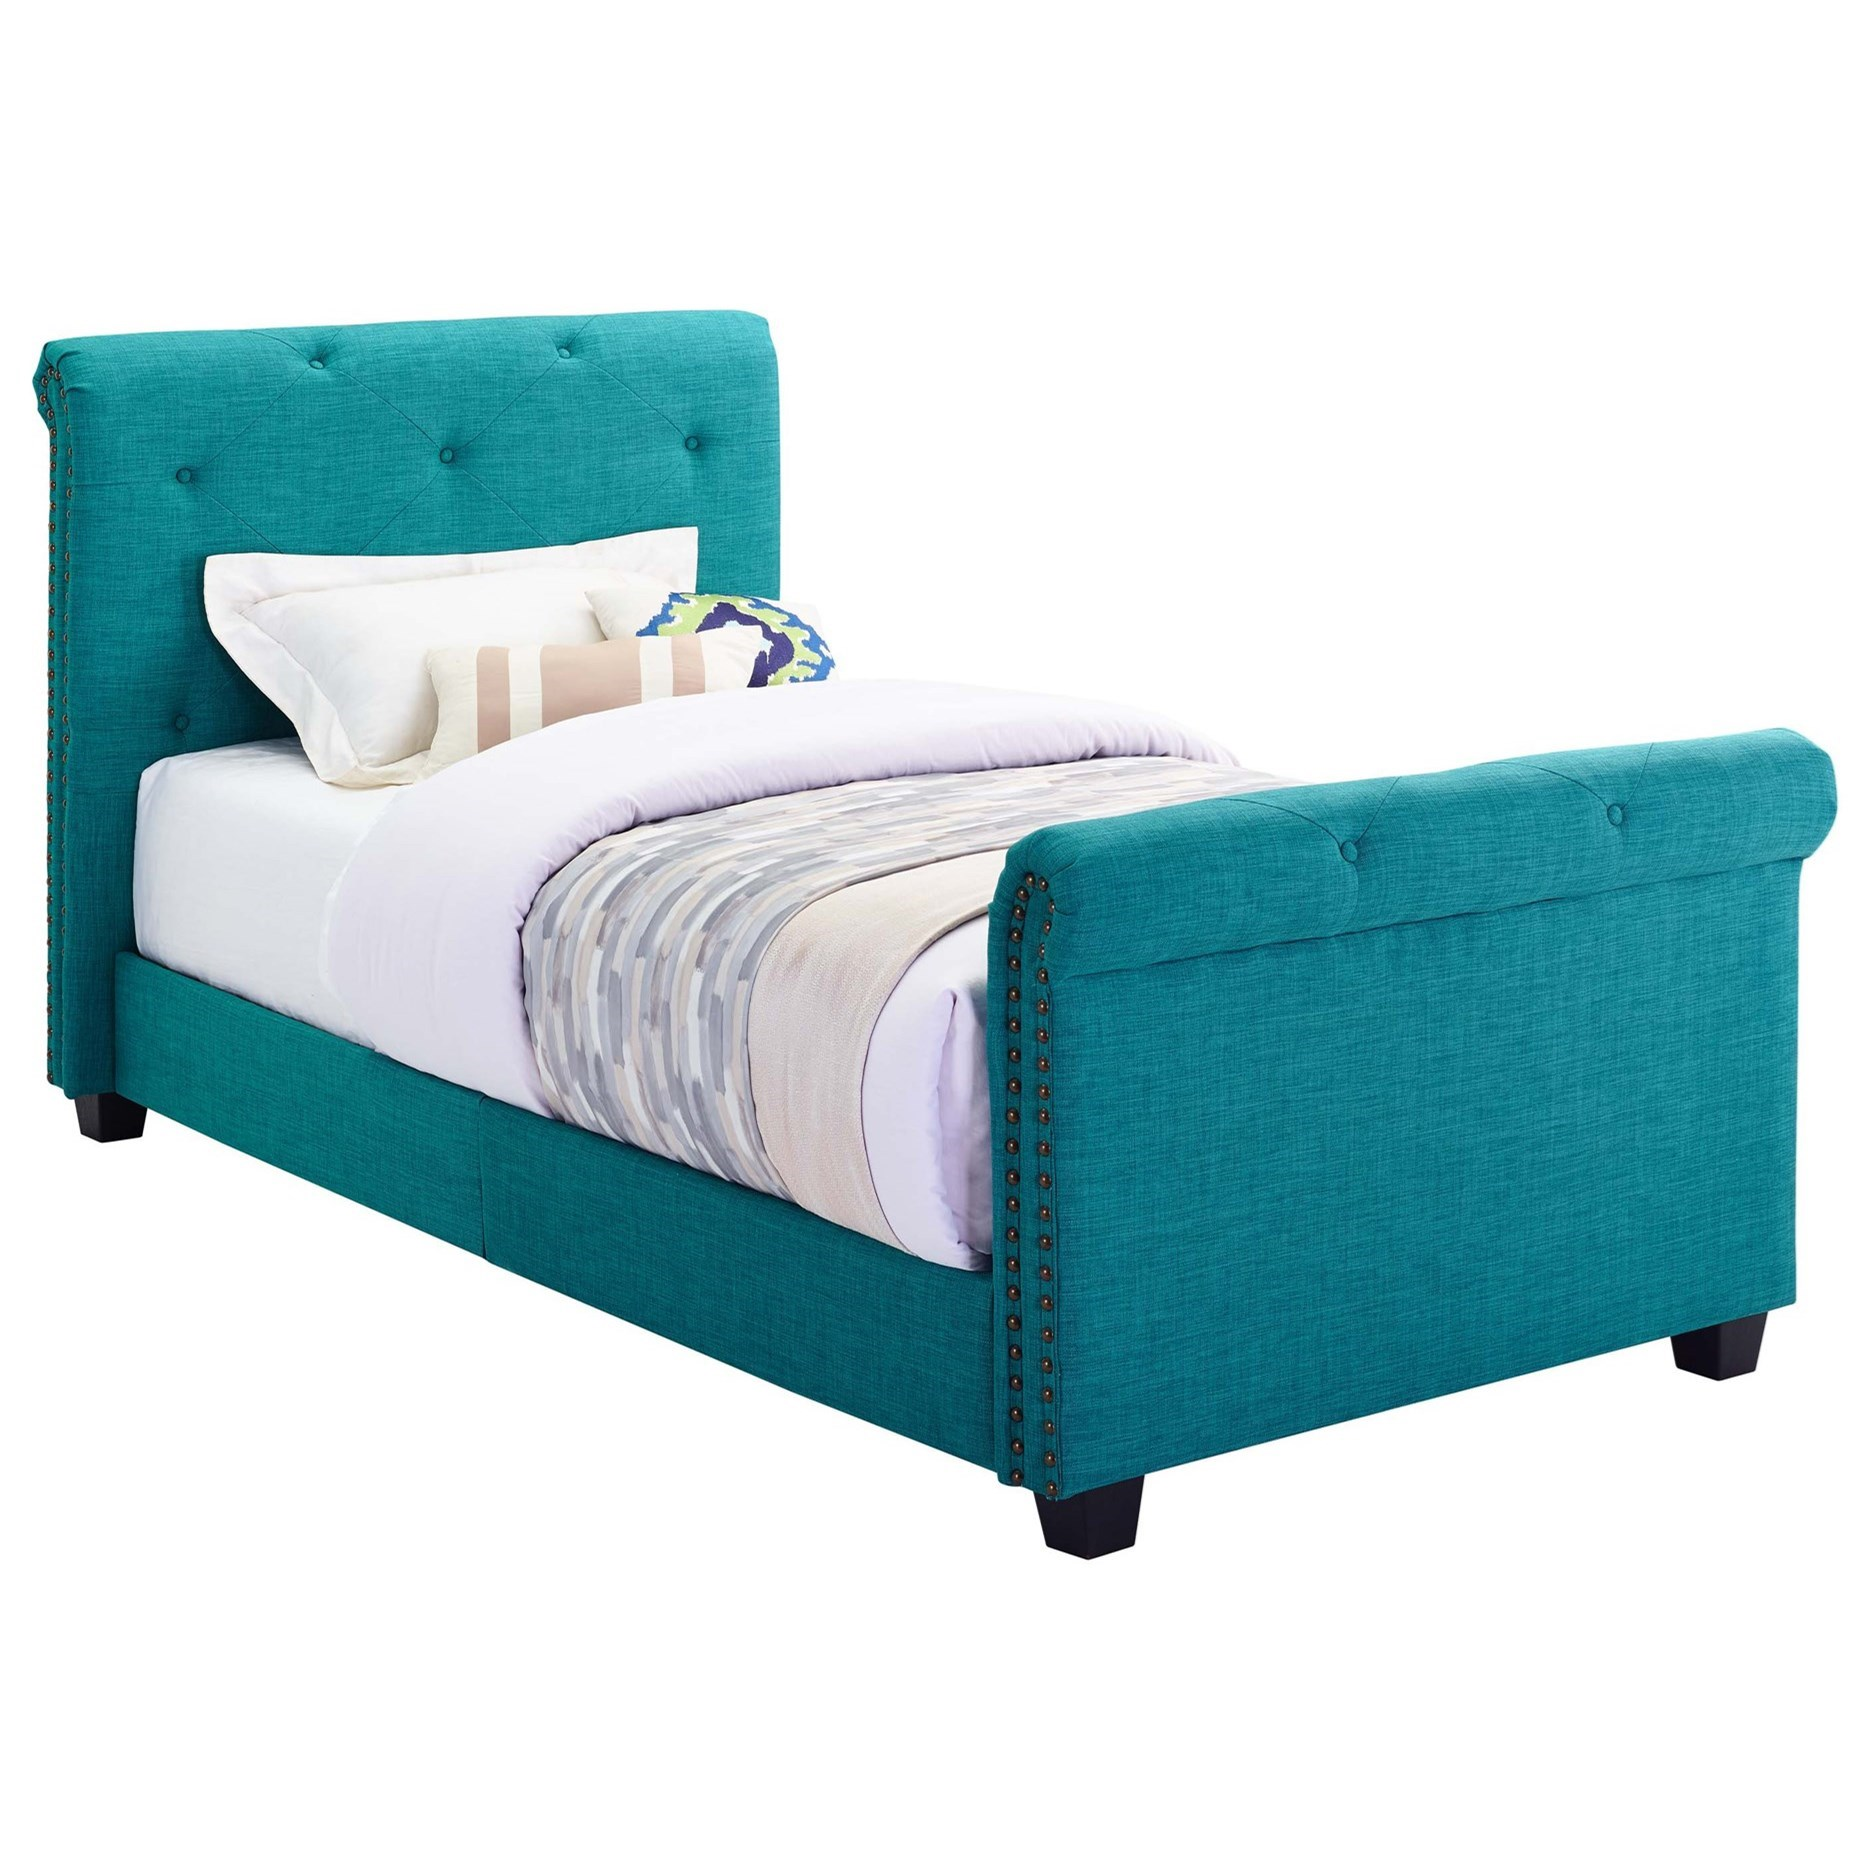 Youth Twin Upholstered Bed